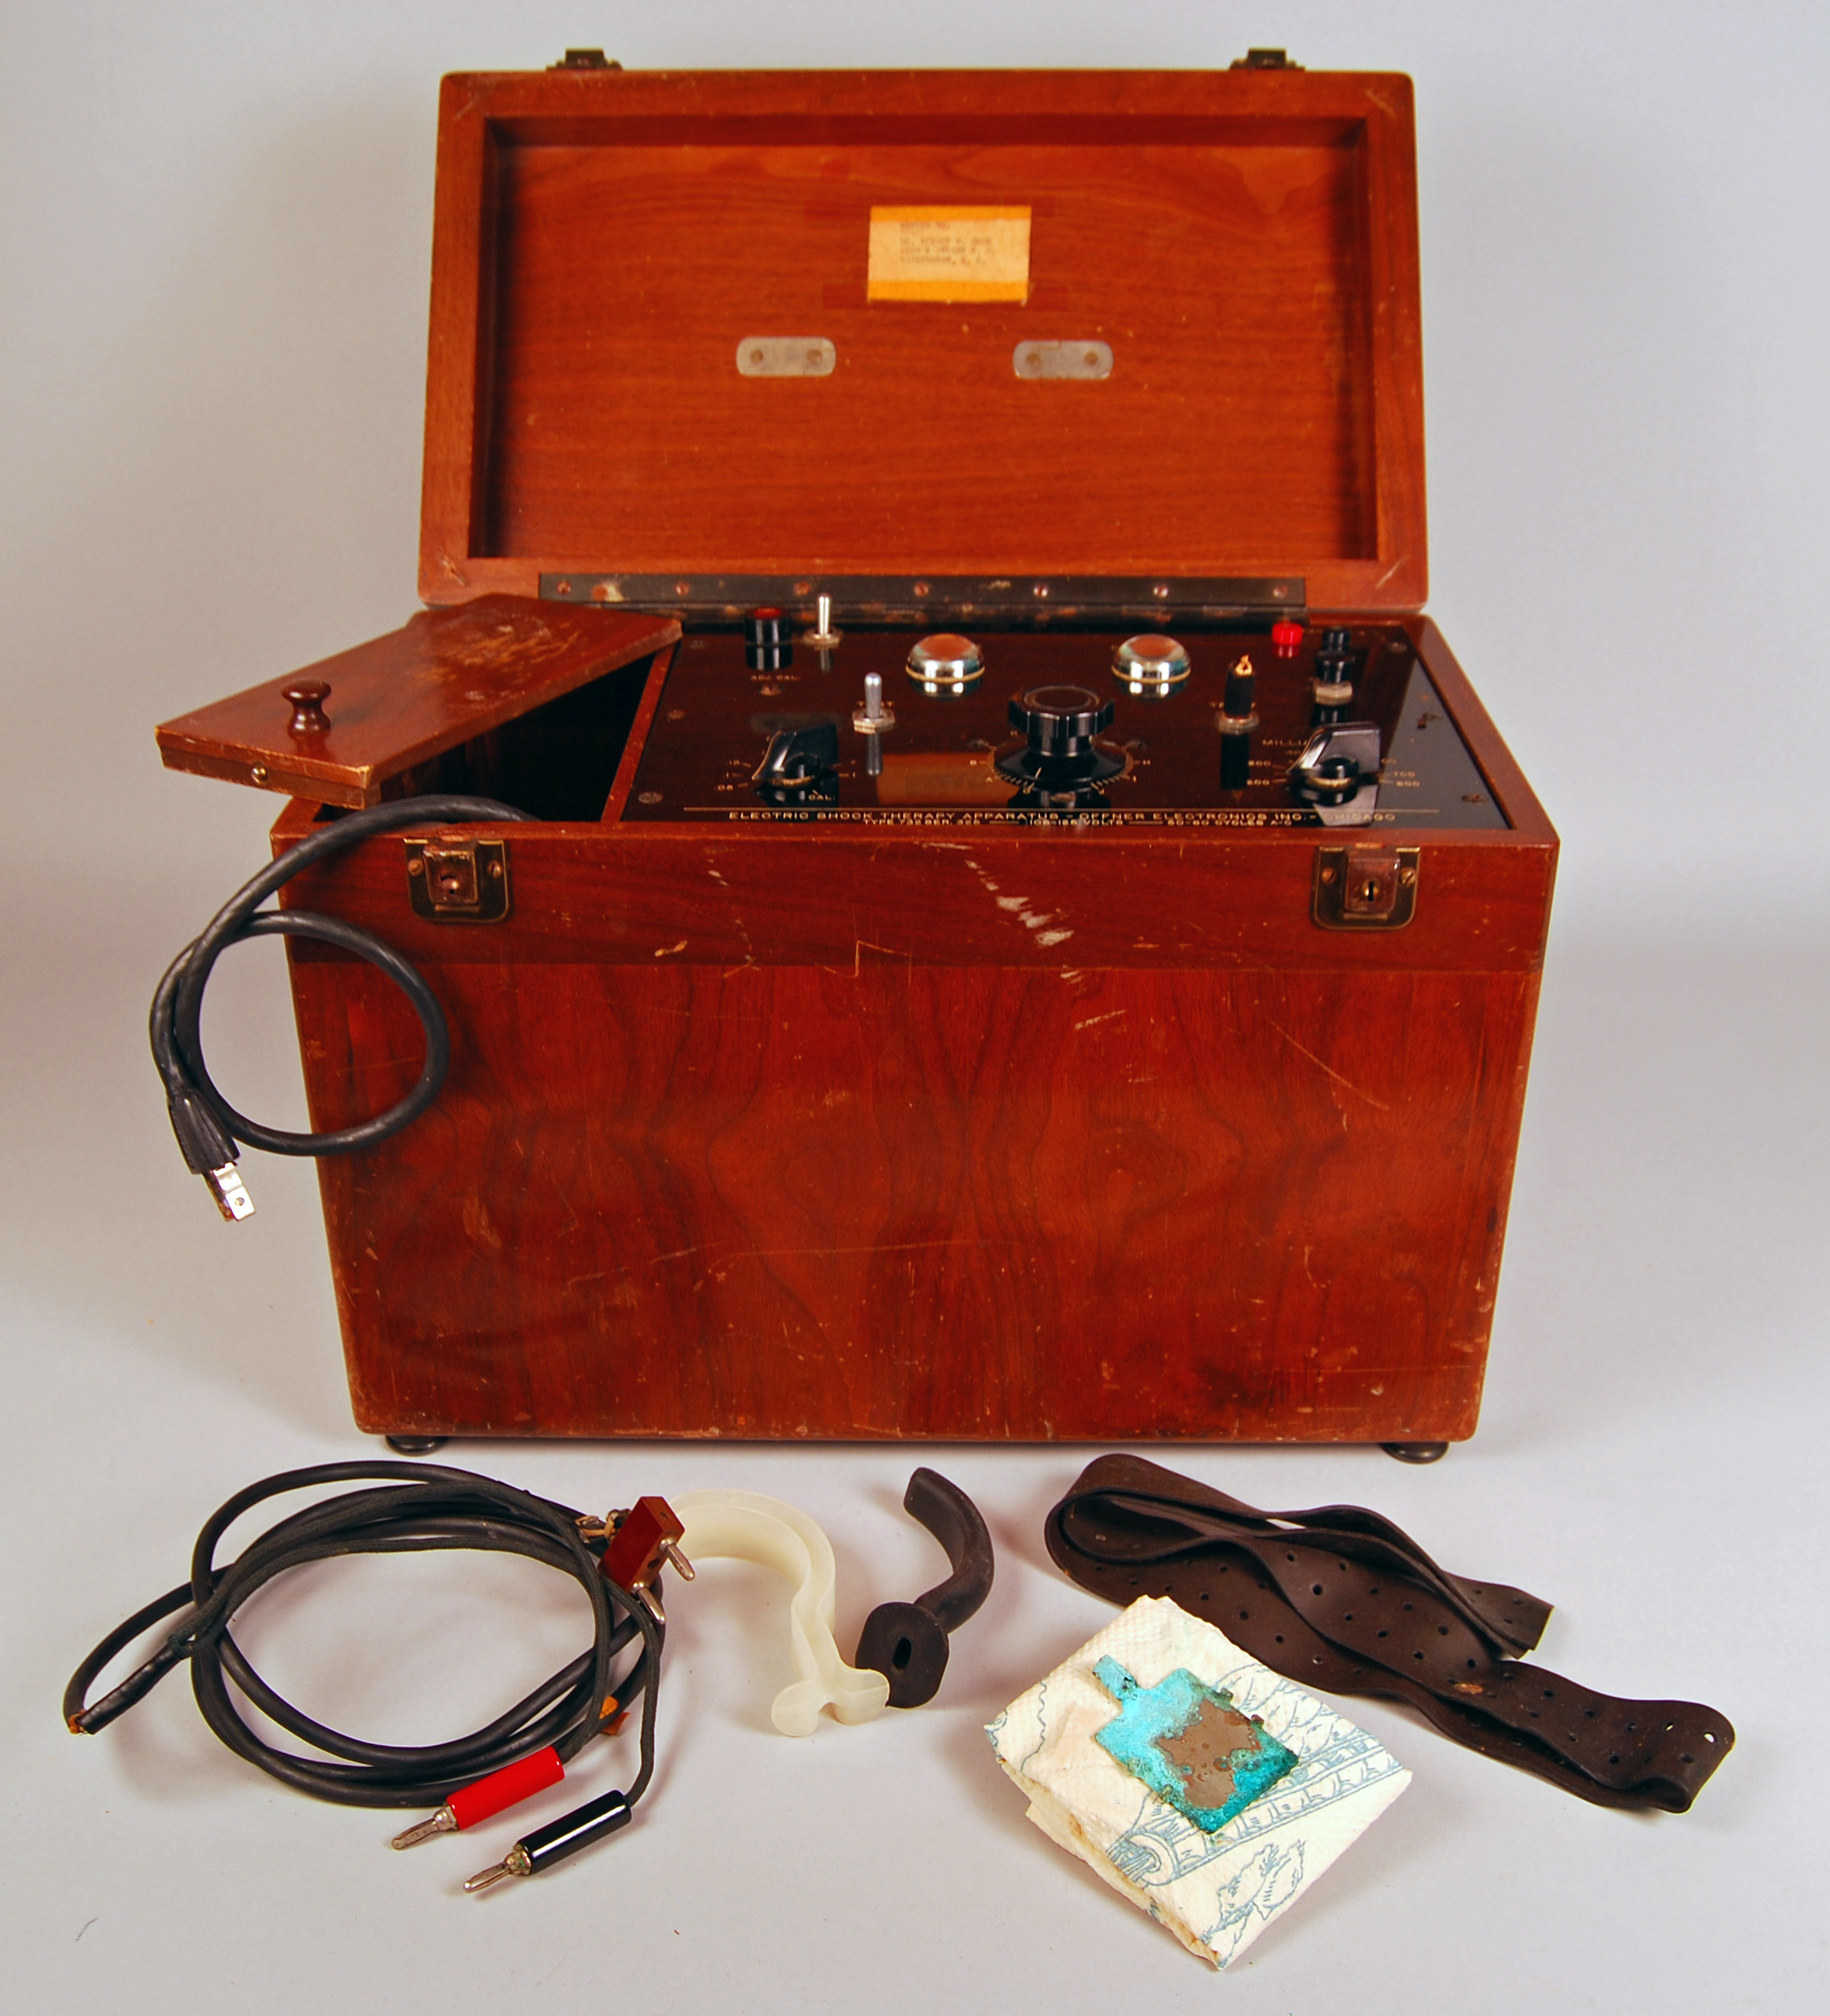 Reddish wooden storage box, quite tall, with lid, which is open. Inside, a control panel with knobs and dials. Outside the box, tubing with electrical-looking plugs, a leather belt, and other items.